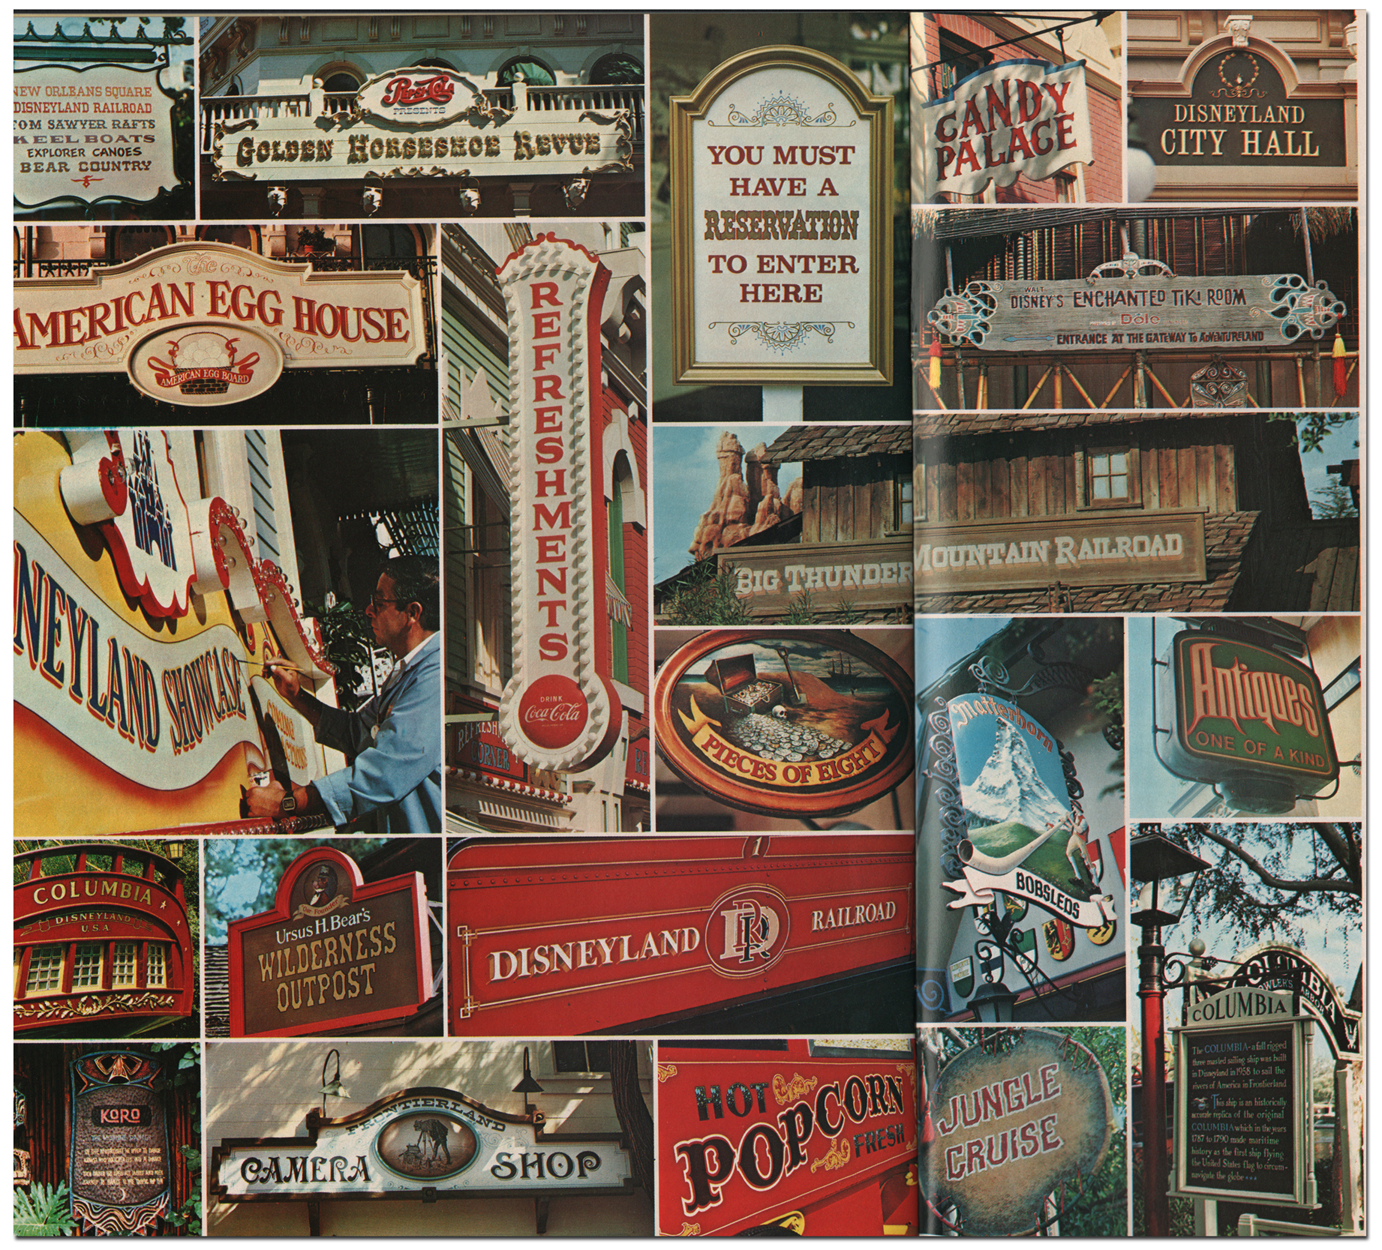 Disney Info Sites: The Disneyland Sign And Pictorial Shop